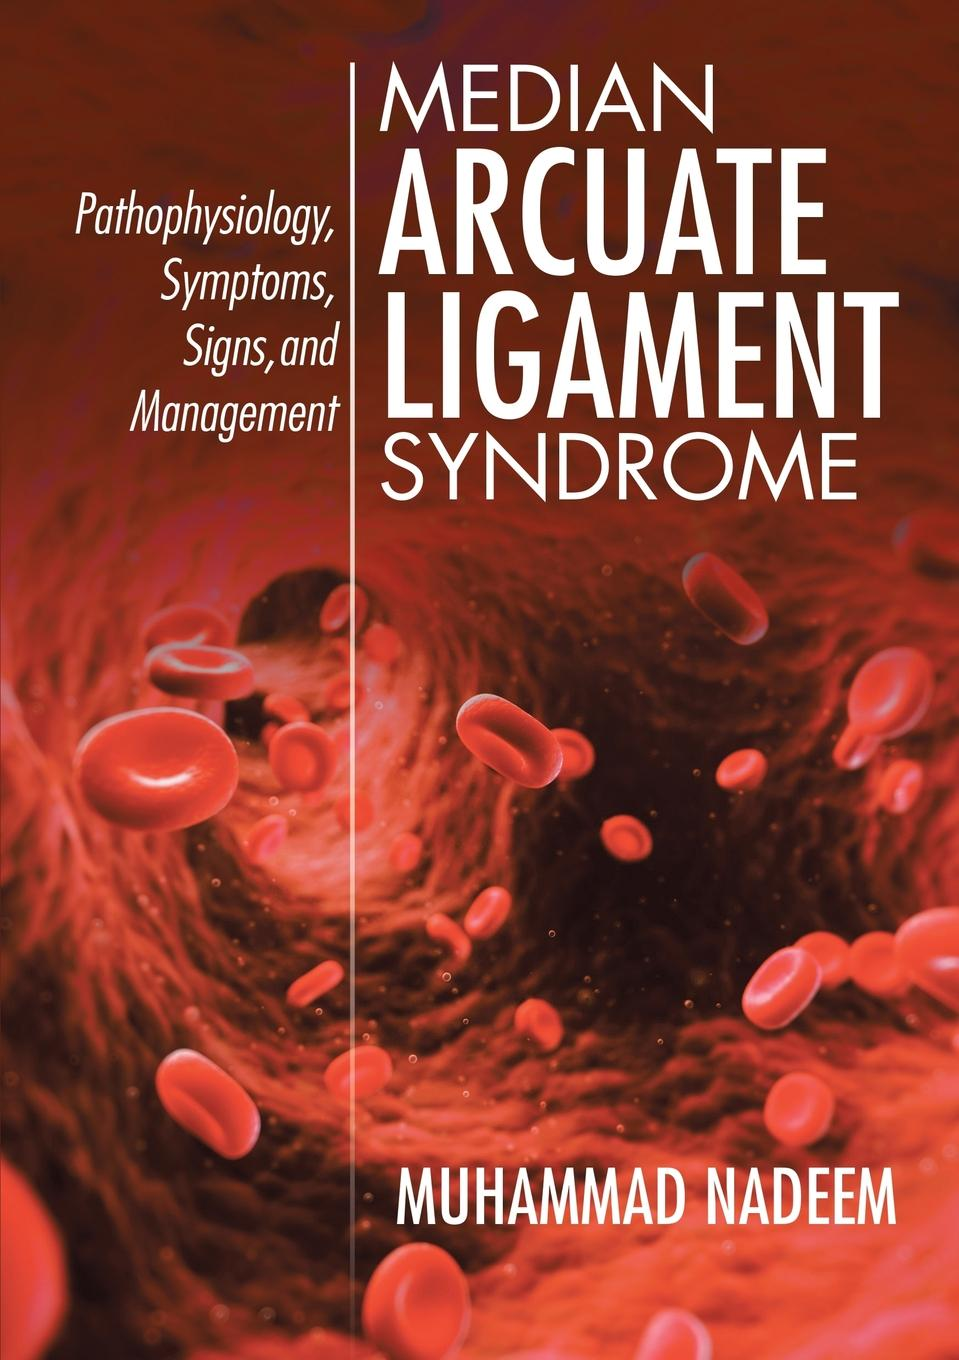 Muhammad Nadeem Median Arcuate Ligament Syndrome. Pathophysiology, Symptoms, Signs, and Management